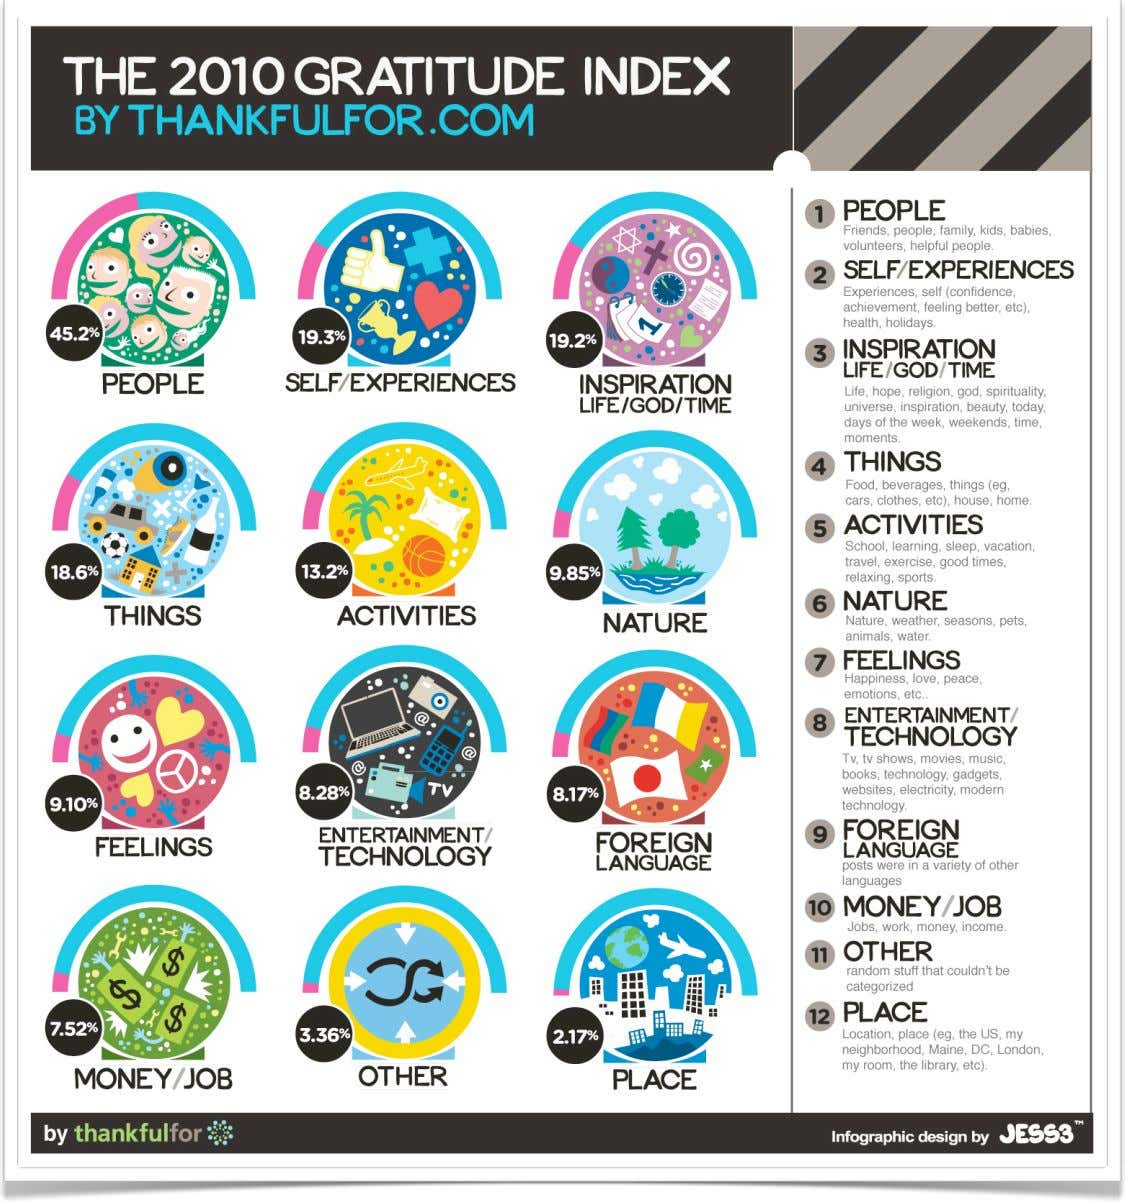 2010 Gratitude Index from Thankfulfor.com